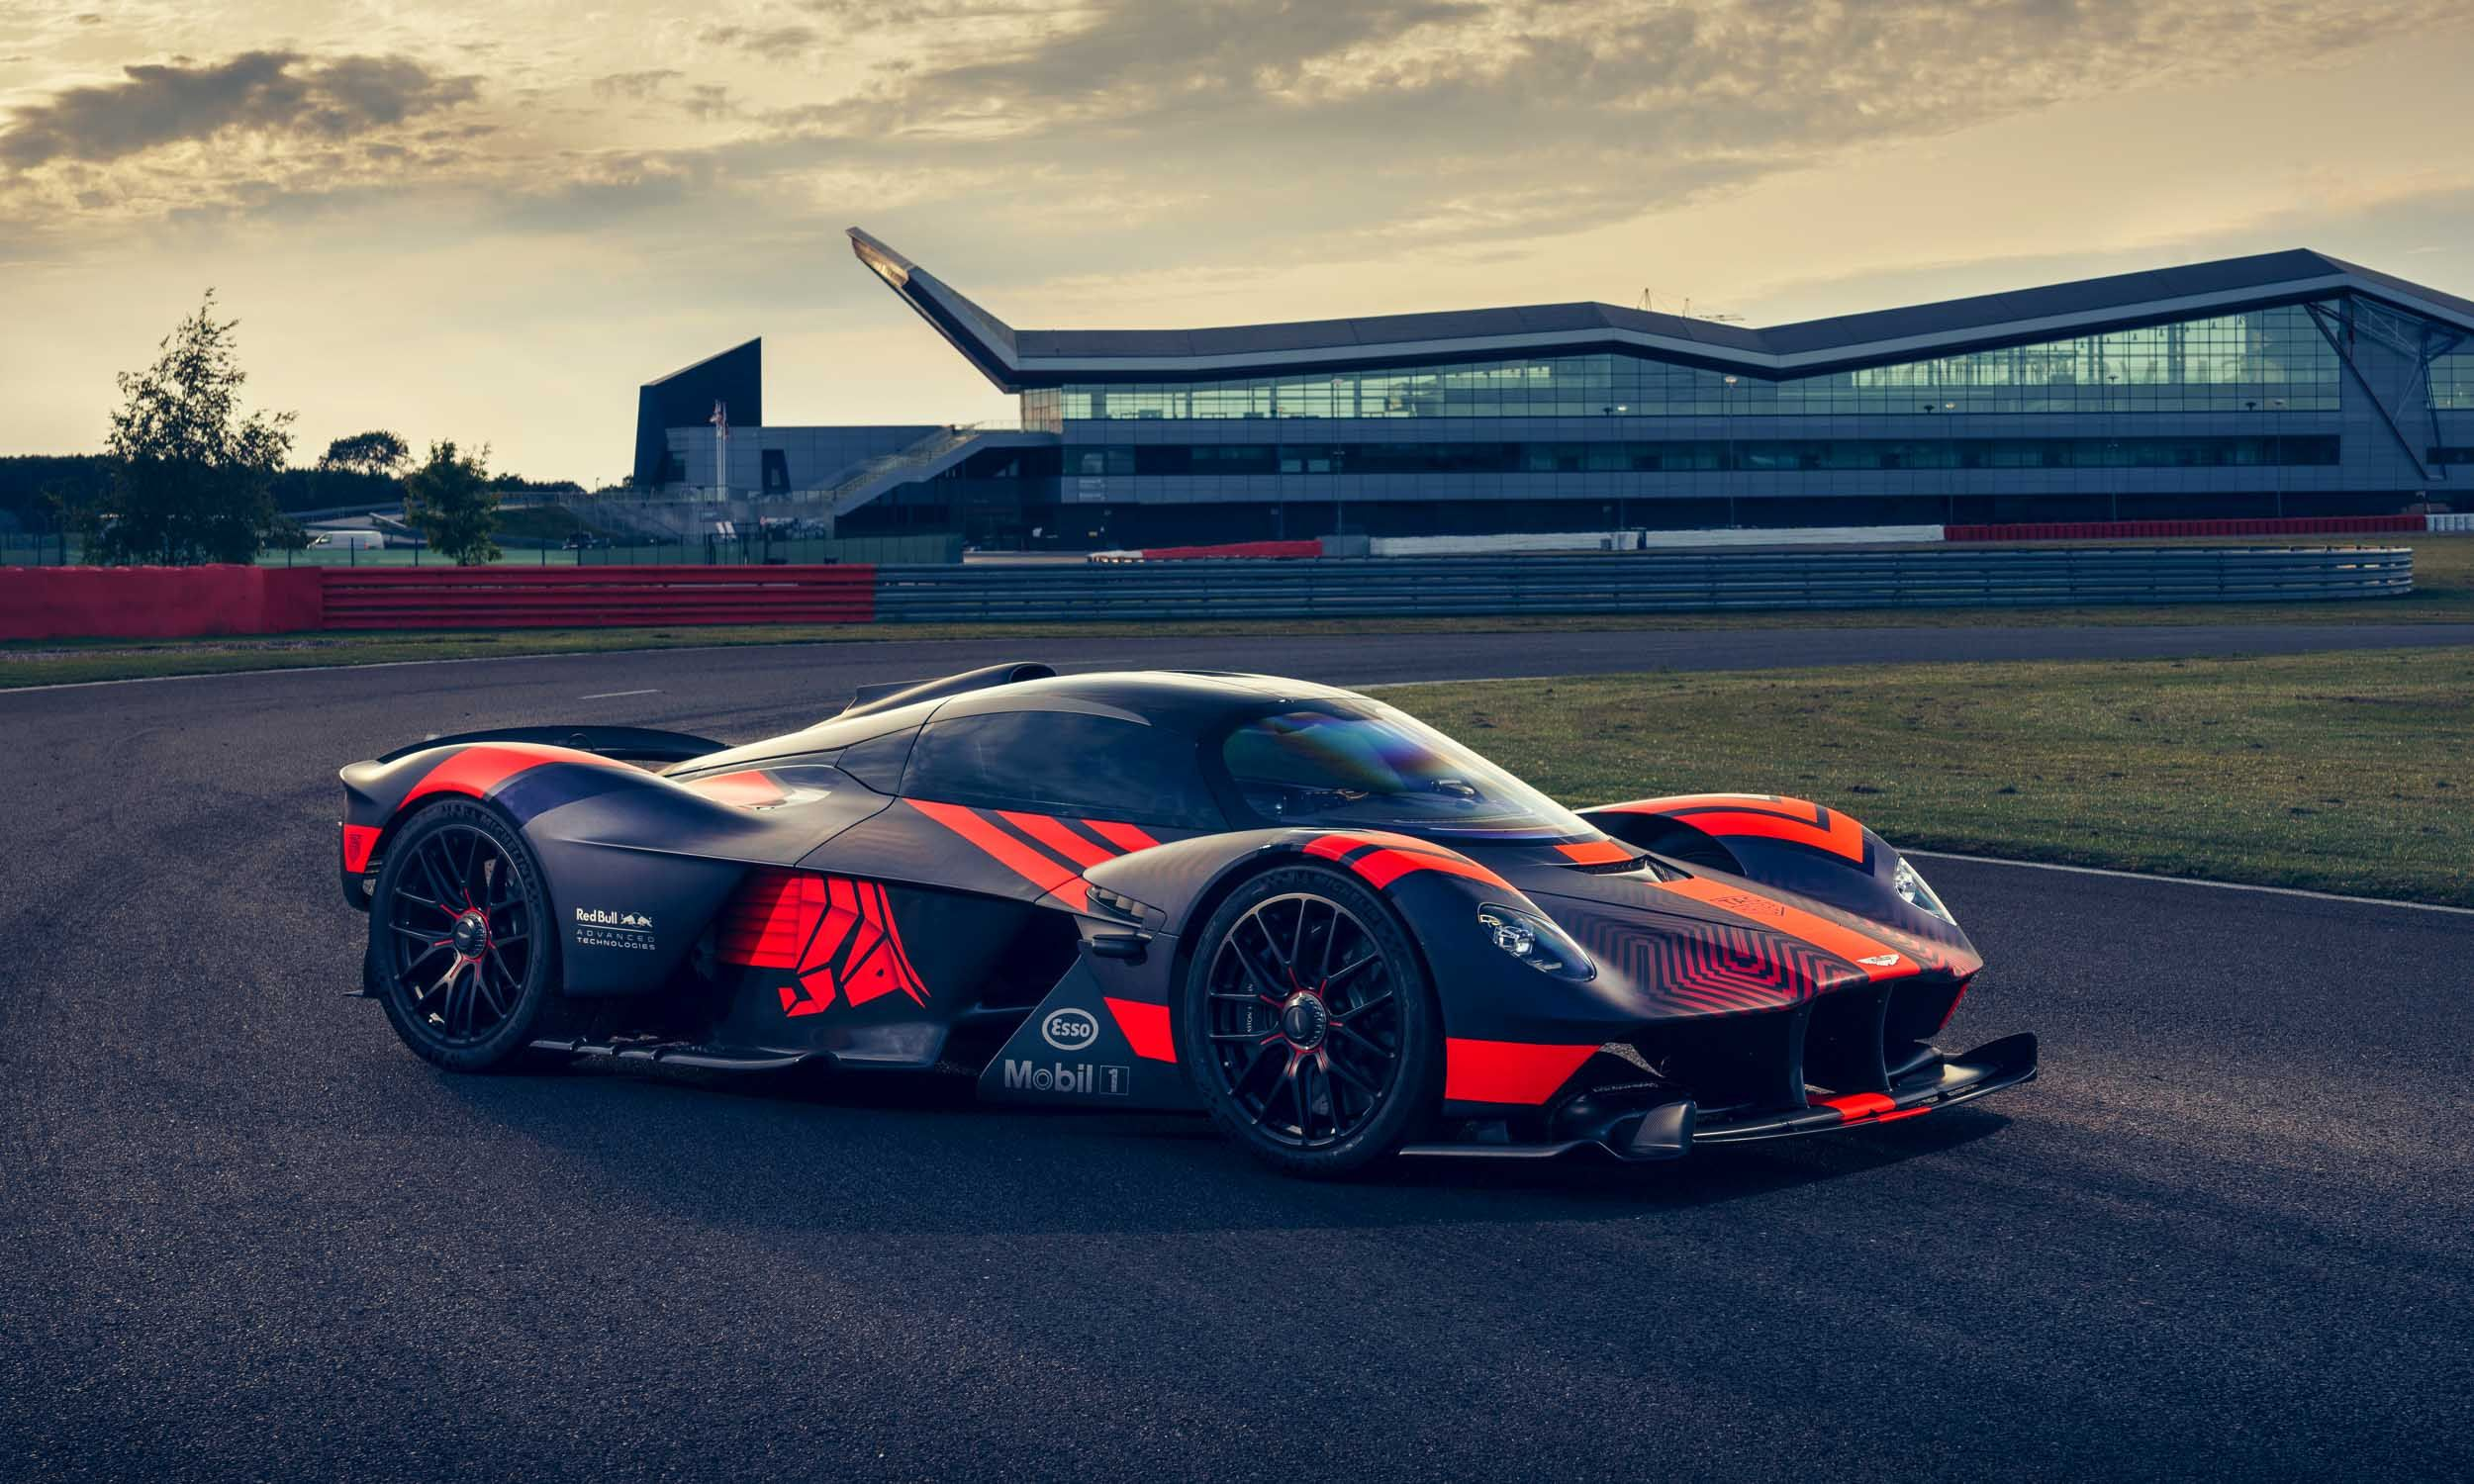 Aston Martin Valkyrie Fast Cars Car In The World Super Fast Cars